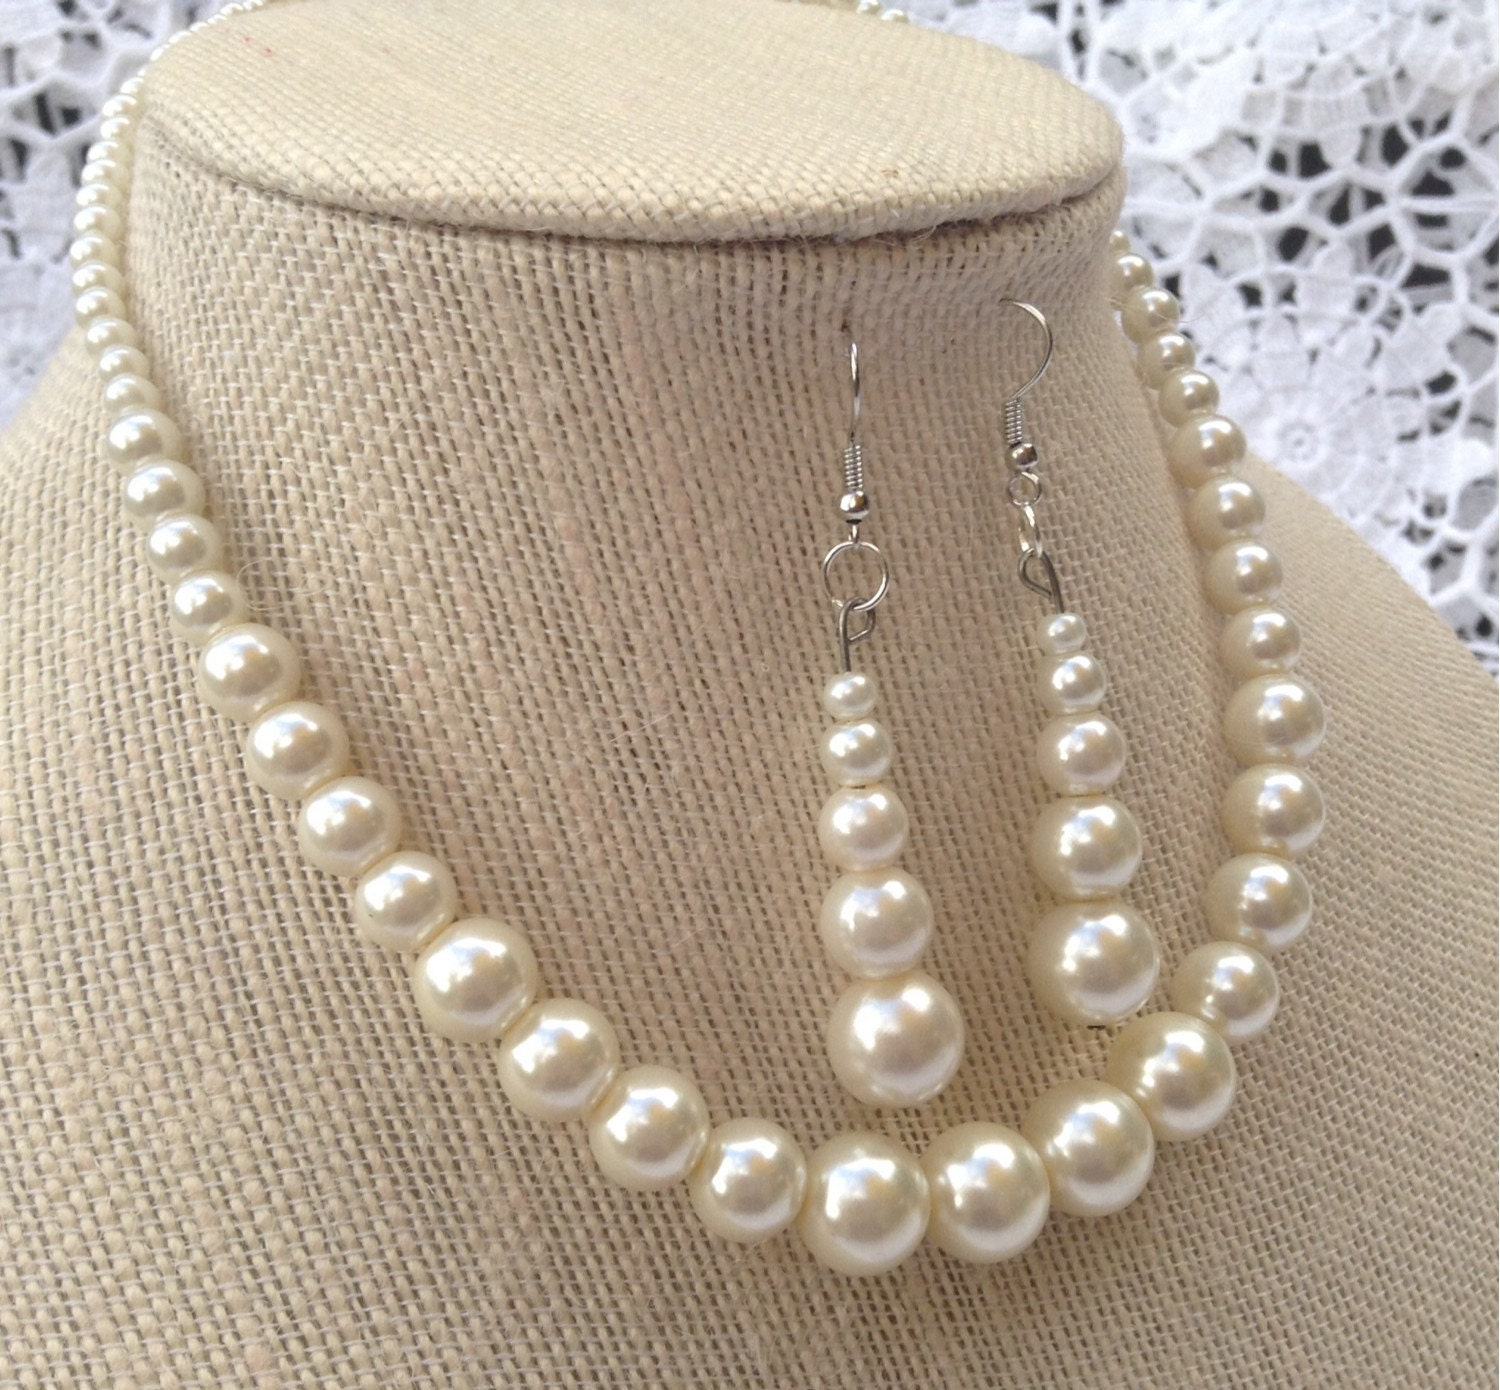 Ivory Wedding Jewelry Ecru Bead Necklace Stocking Stuffer